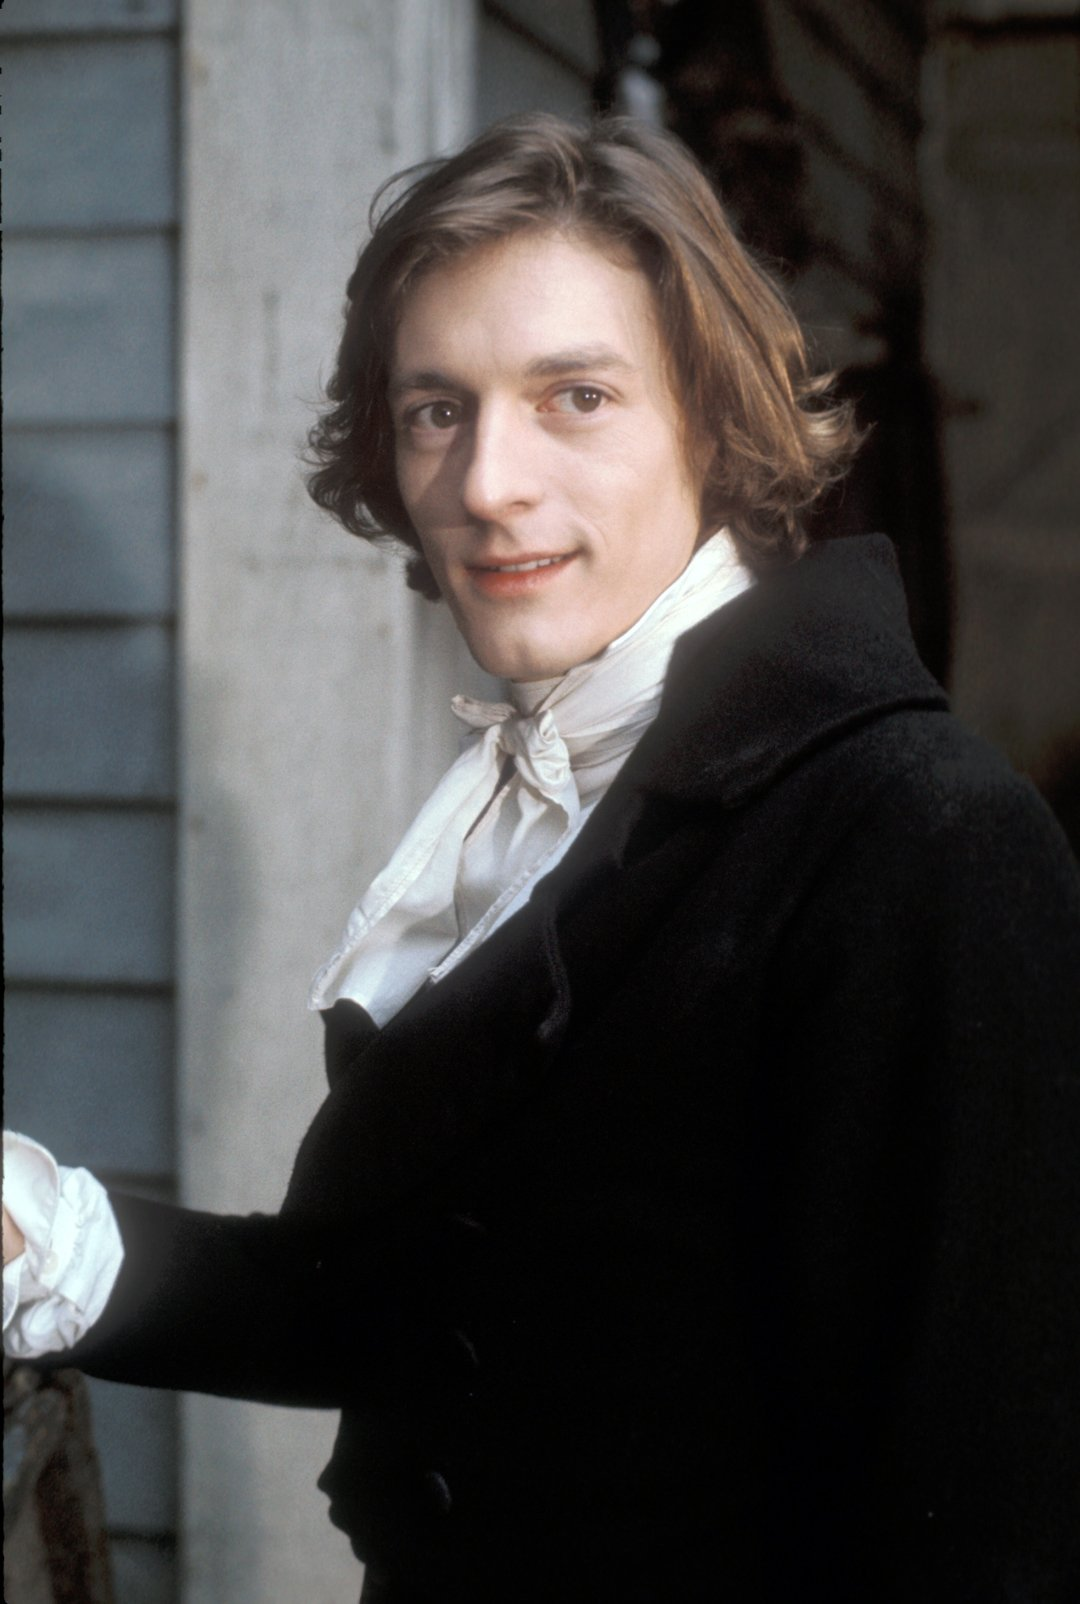 pictures Nigel Havers (born 1951)